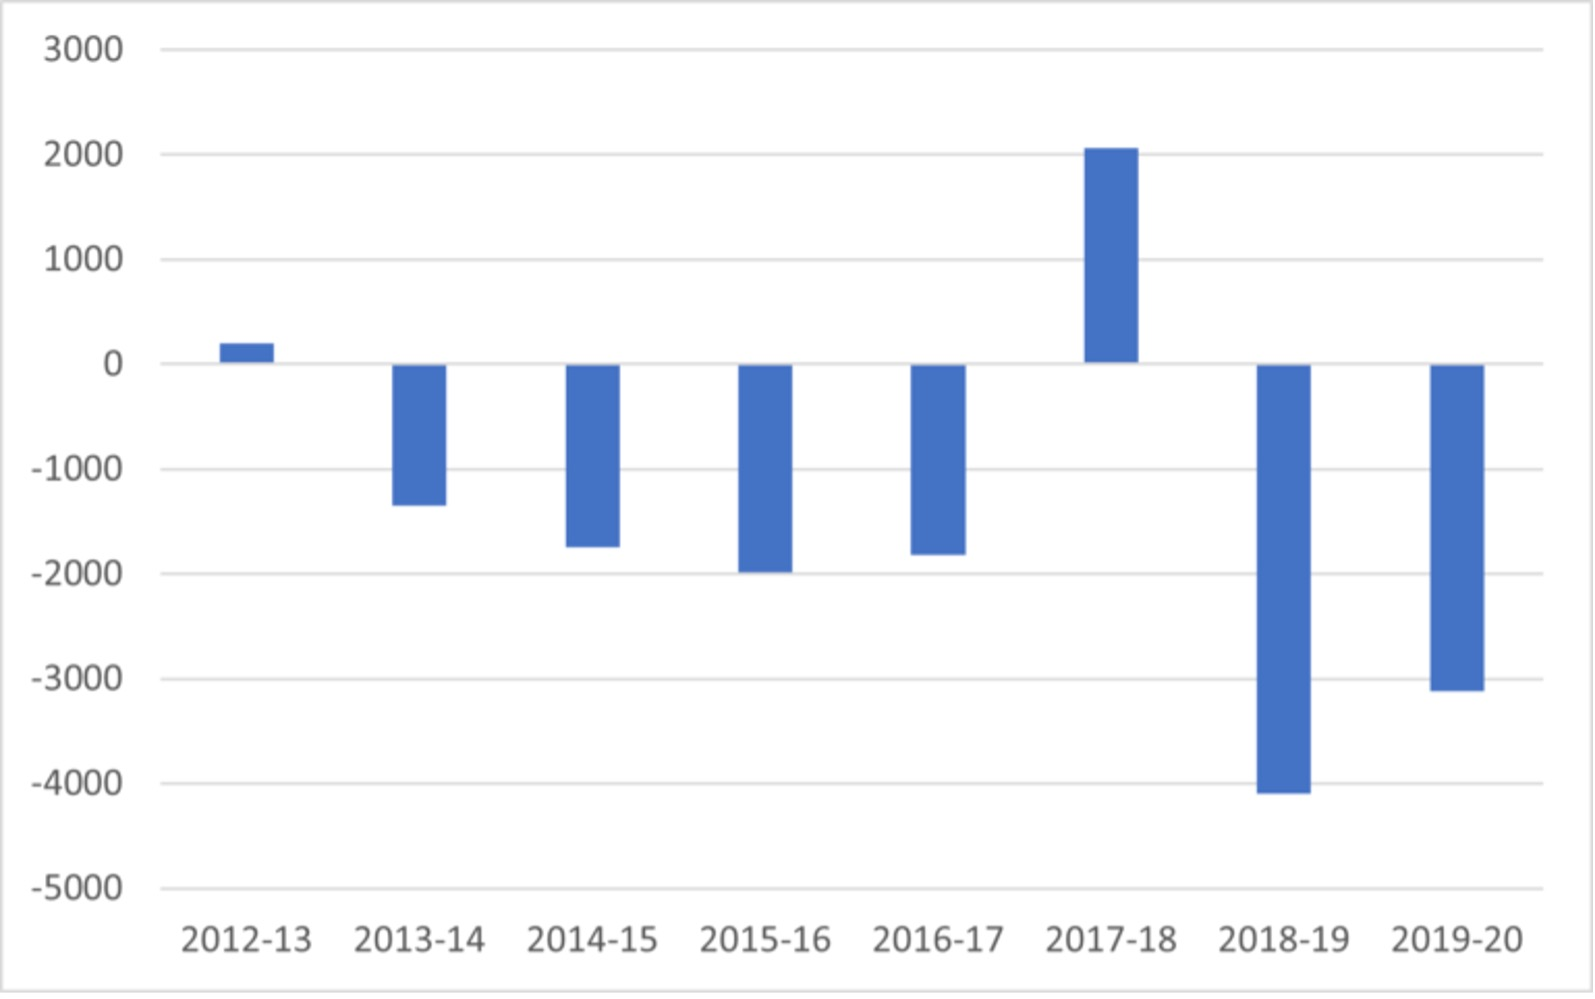 Graph - significant net loss at Laurentian every year since 2012 with exception of 2017-18